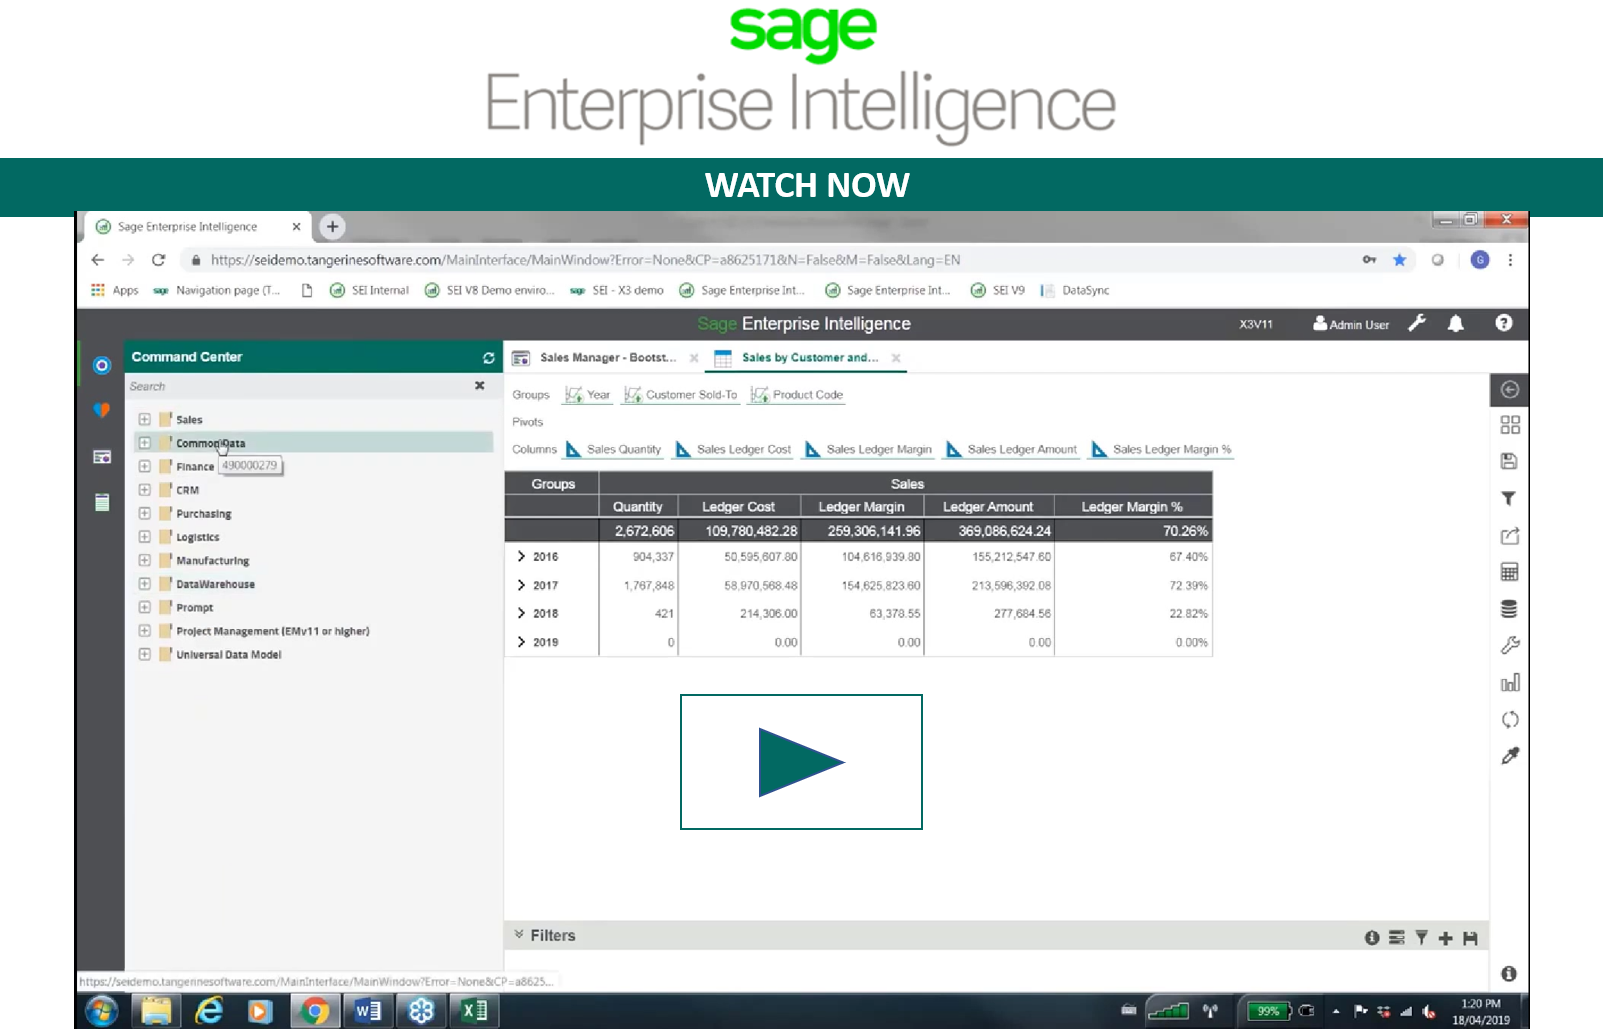 Sage Enterprise Intelligence Watch Now